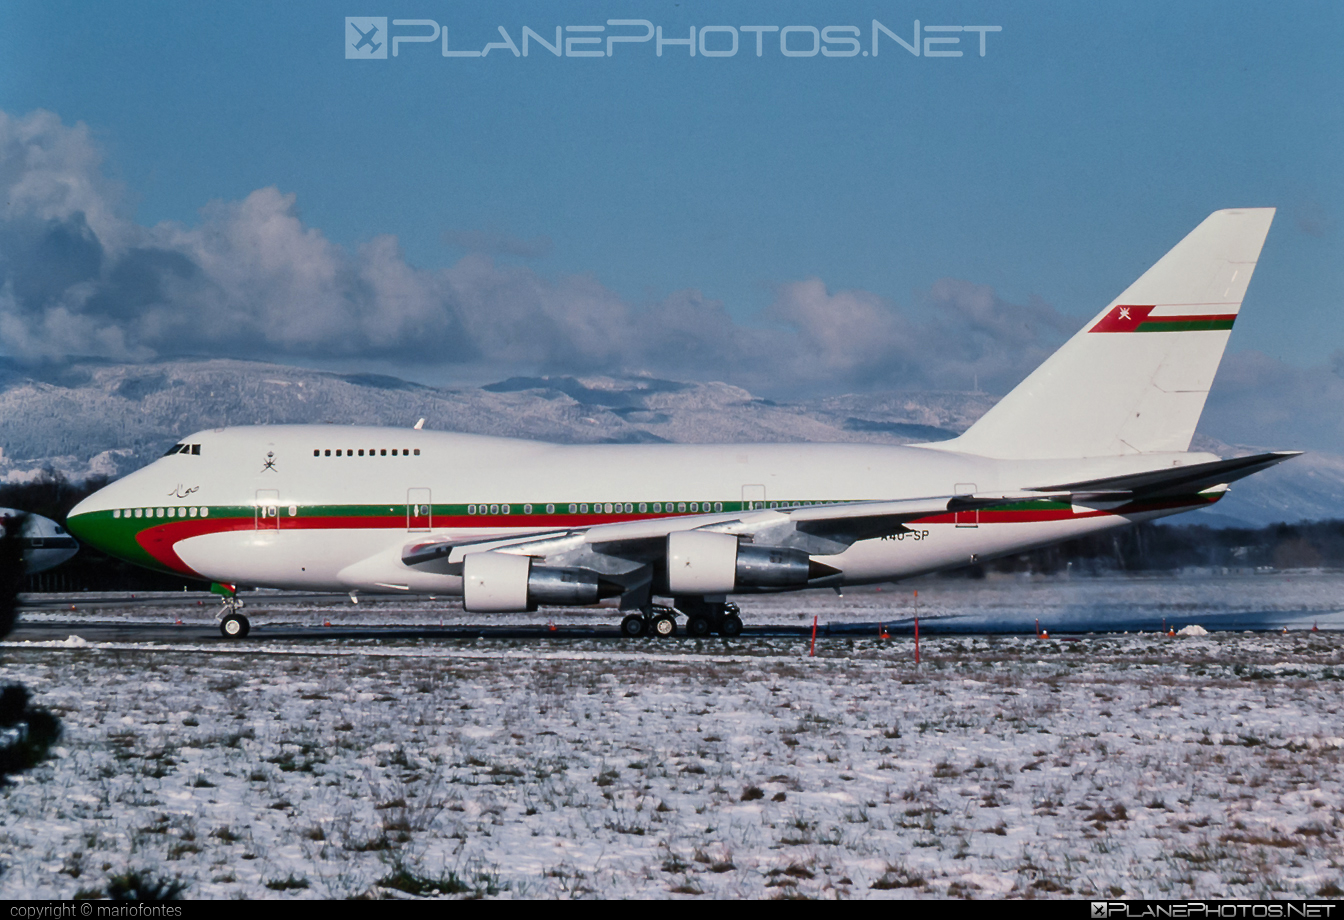 Boeing 747SP - A40-SP operated by Royal Flight of Oman #b747 #b747sp #boeing #boeing747 #jumbo #royalflightofoman